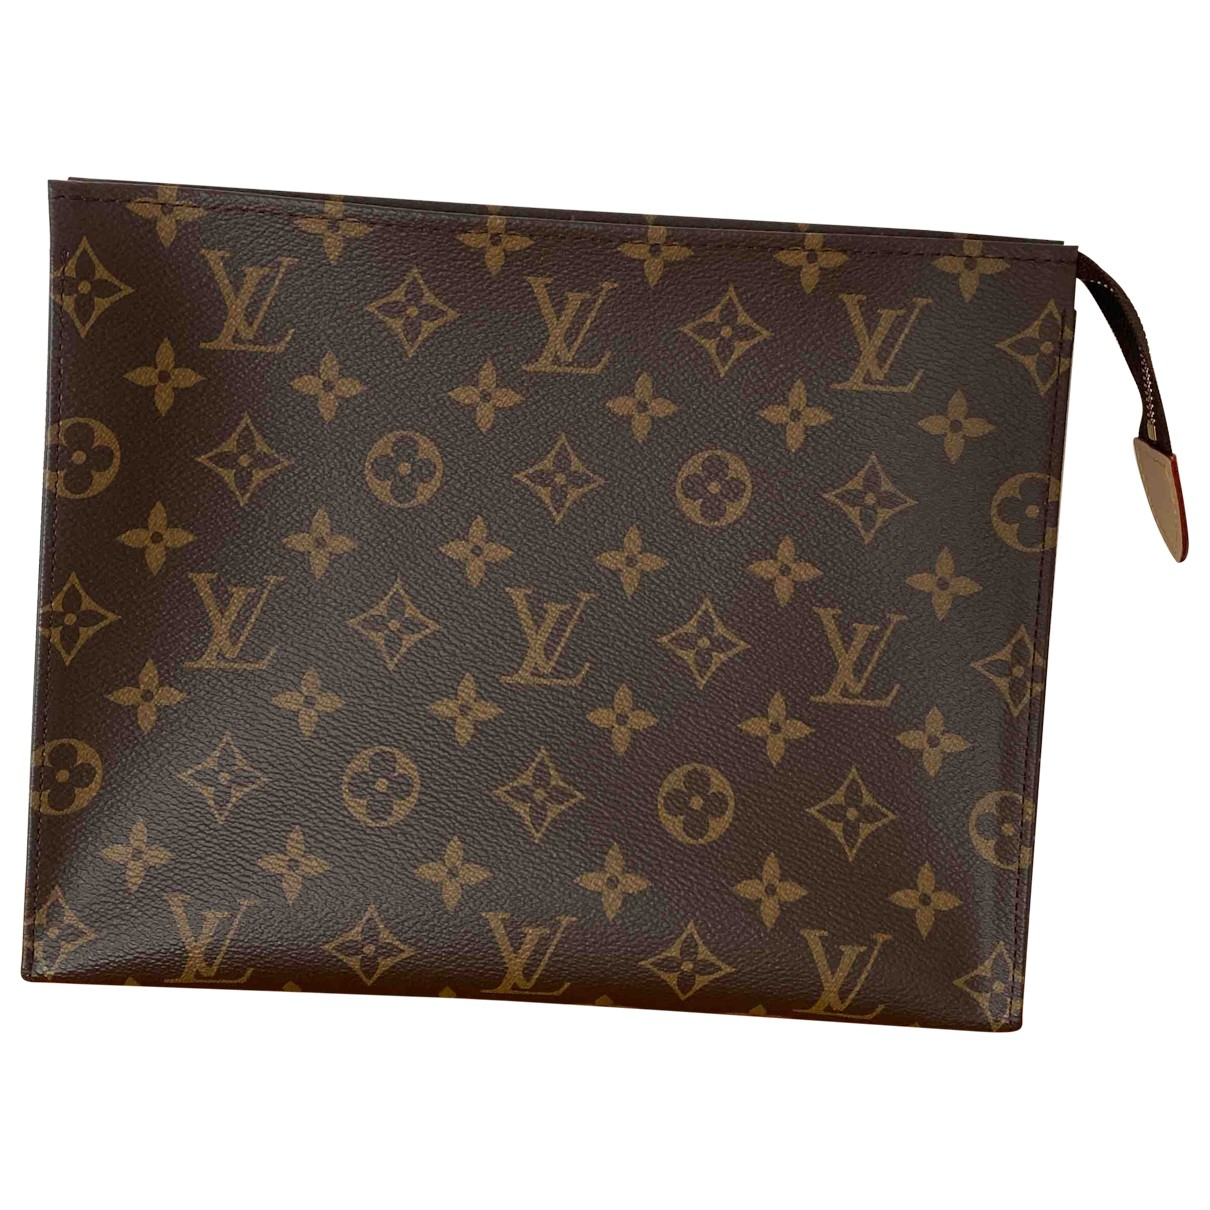 Neceser de Lona Louis Vuitton